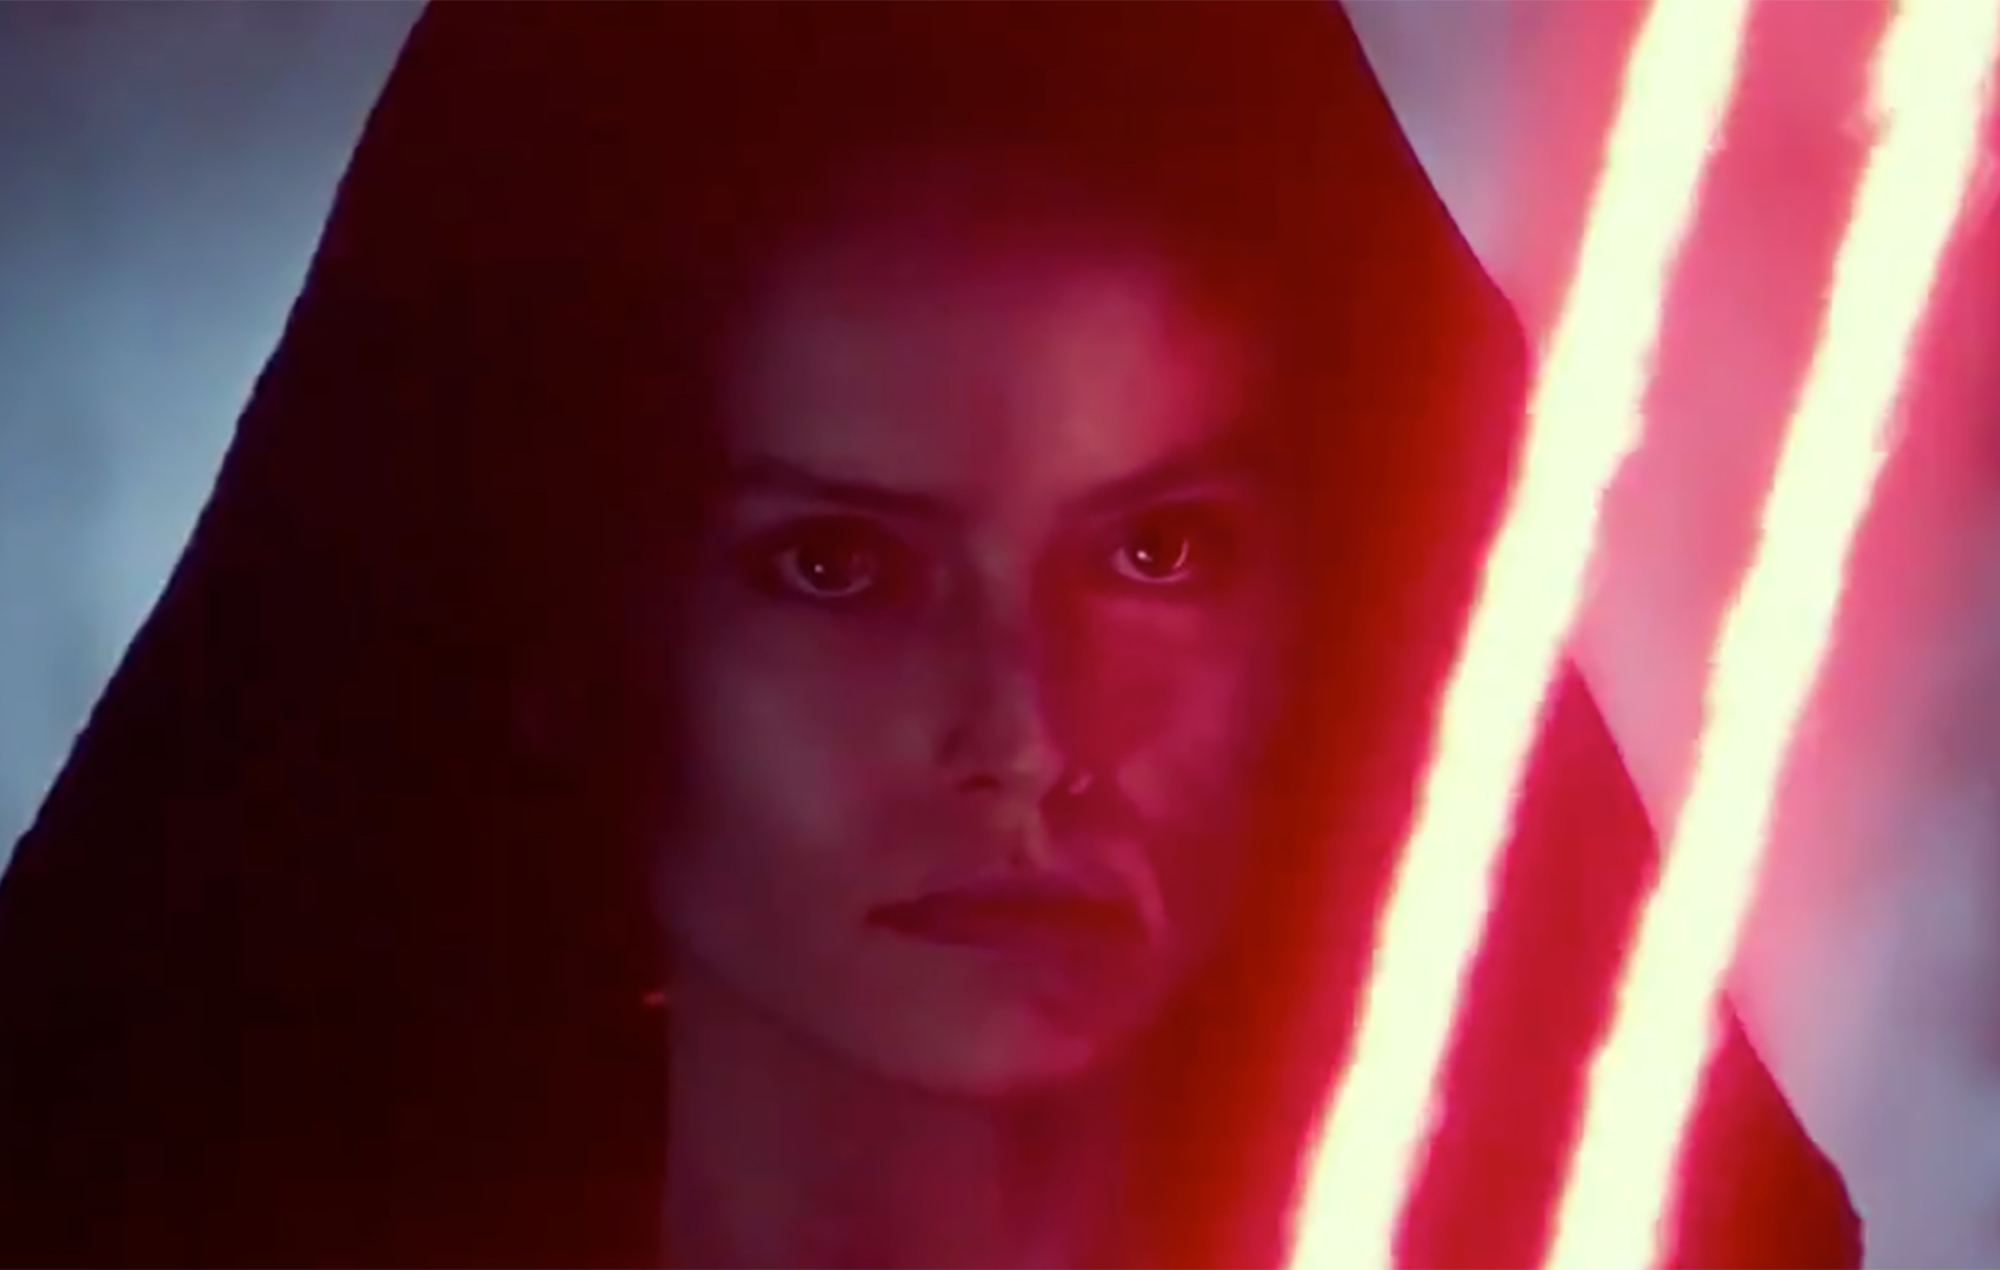 'Star Wars': There's another Dark Rey design for 'The Rise of Skywalker'